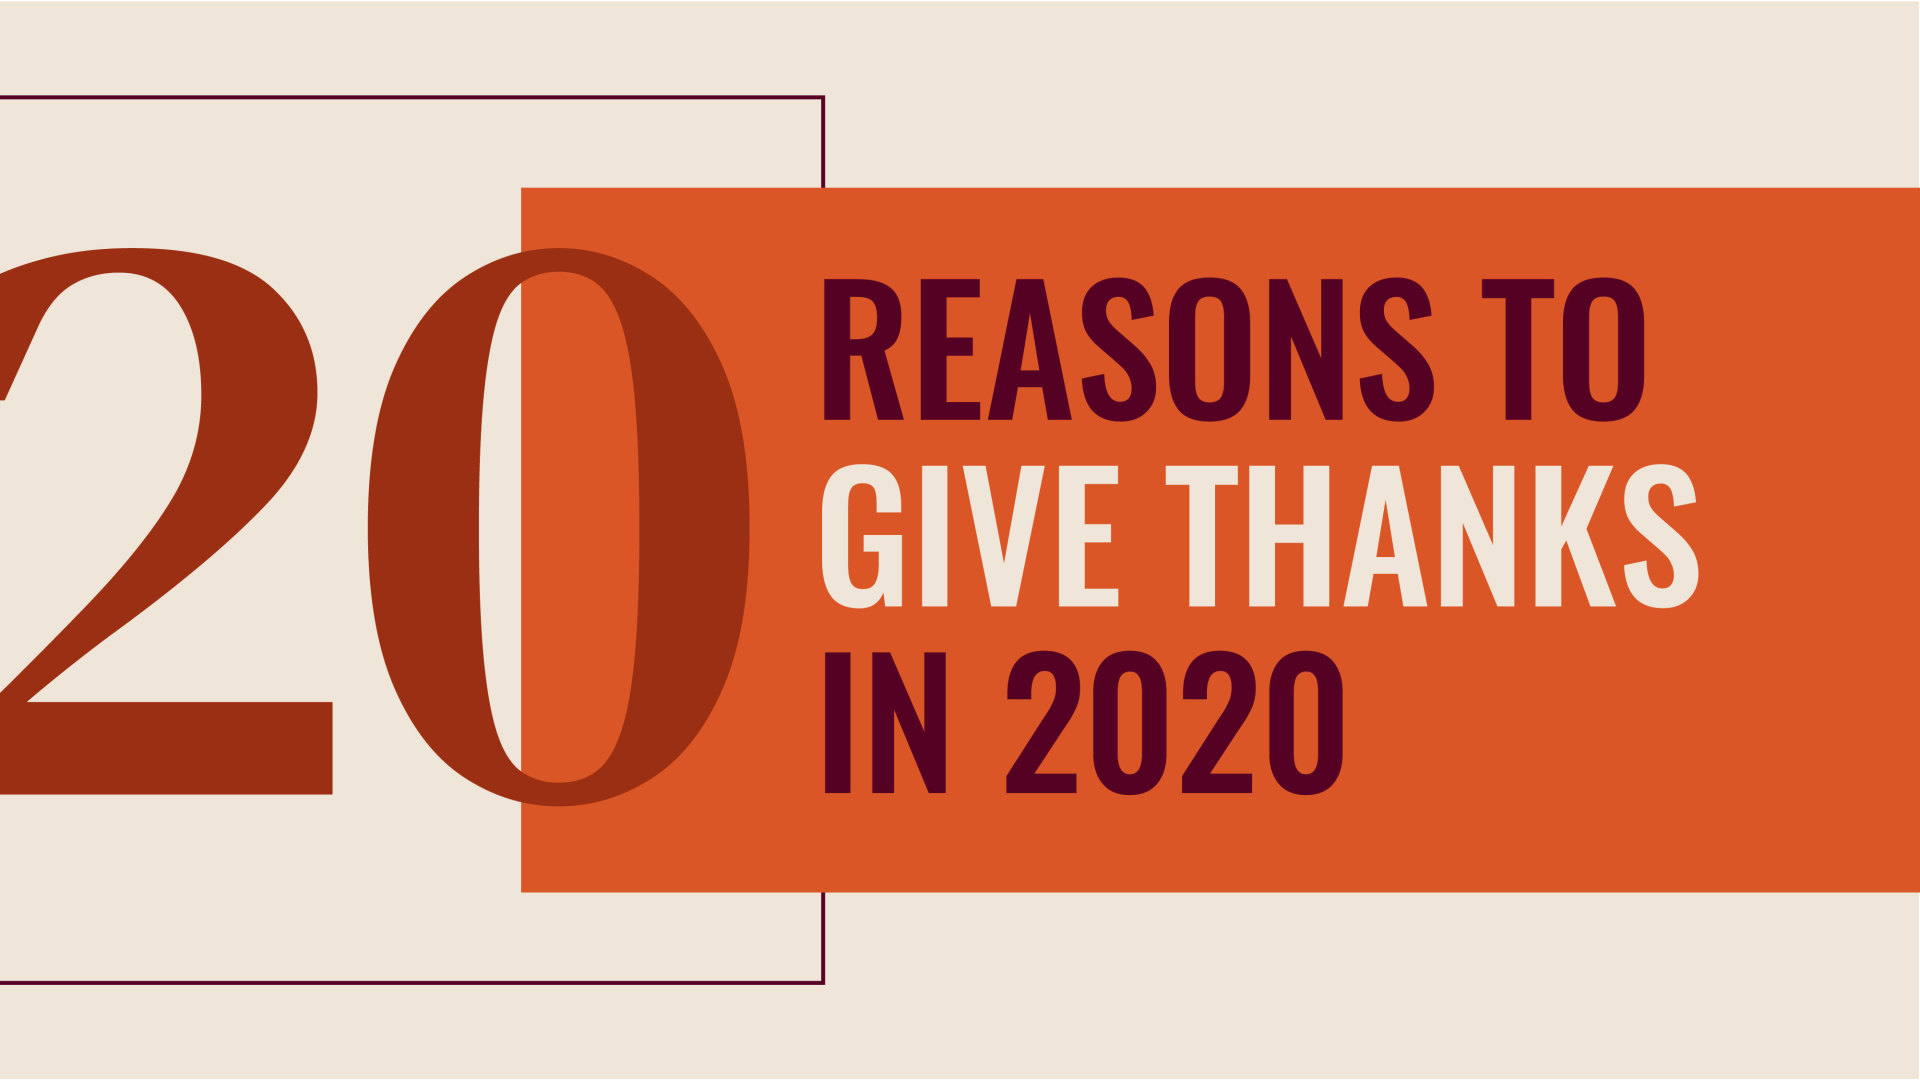 20 Reasons to Give Thanks in 2020 Hero Image